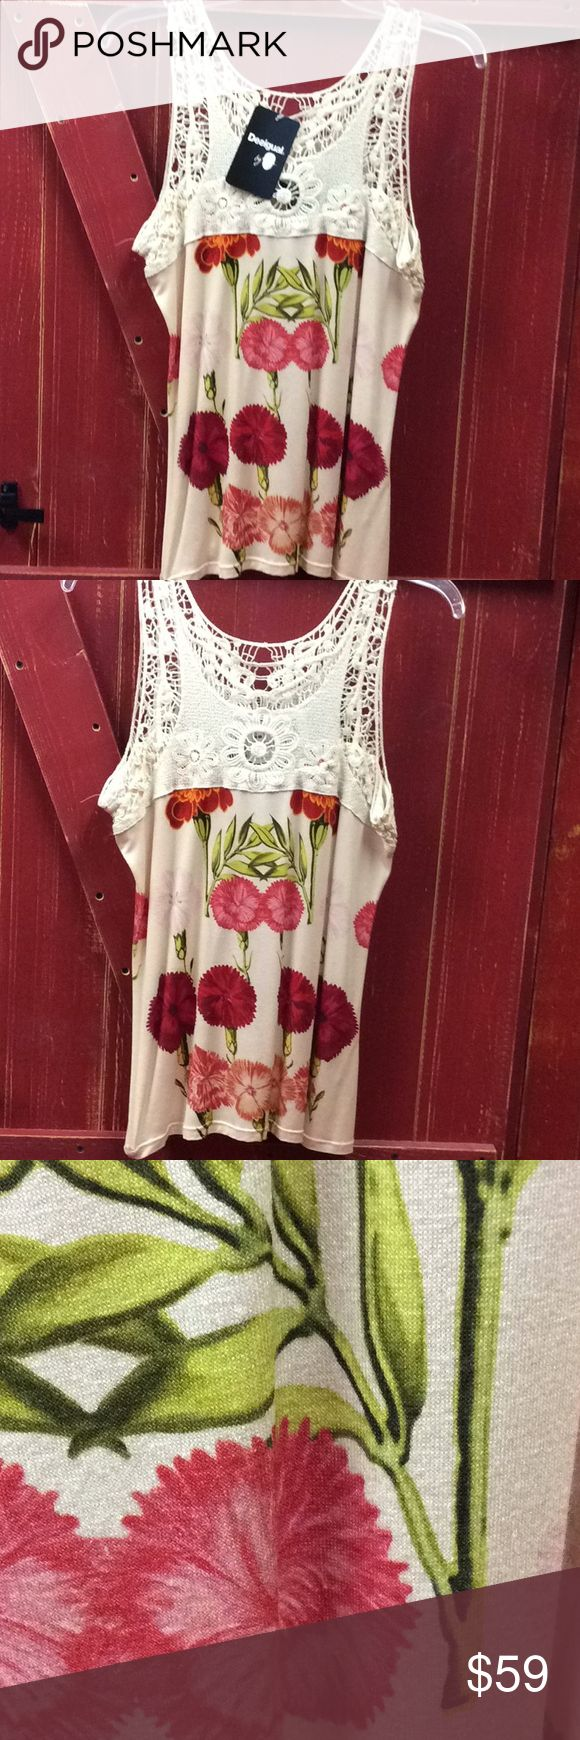 Desigual floral tank or cami A perfect spring and summer romantic piece from Spain. Yes you will feel like a lady and get many compliments. Looks outstanding with a skirt. 67 viscose 30 cotton 3 elastane This is a large. 17 in laying flat from arm to arm 25 in long Desigual runs smalll, Desigual Tops Camisoles